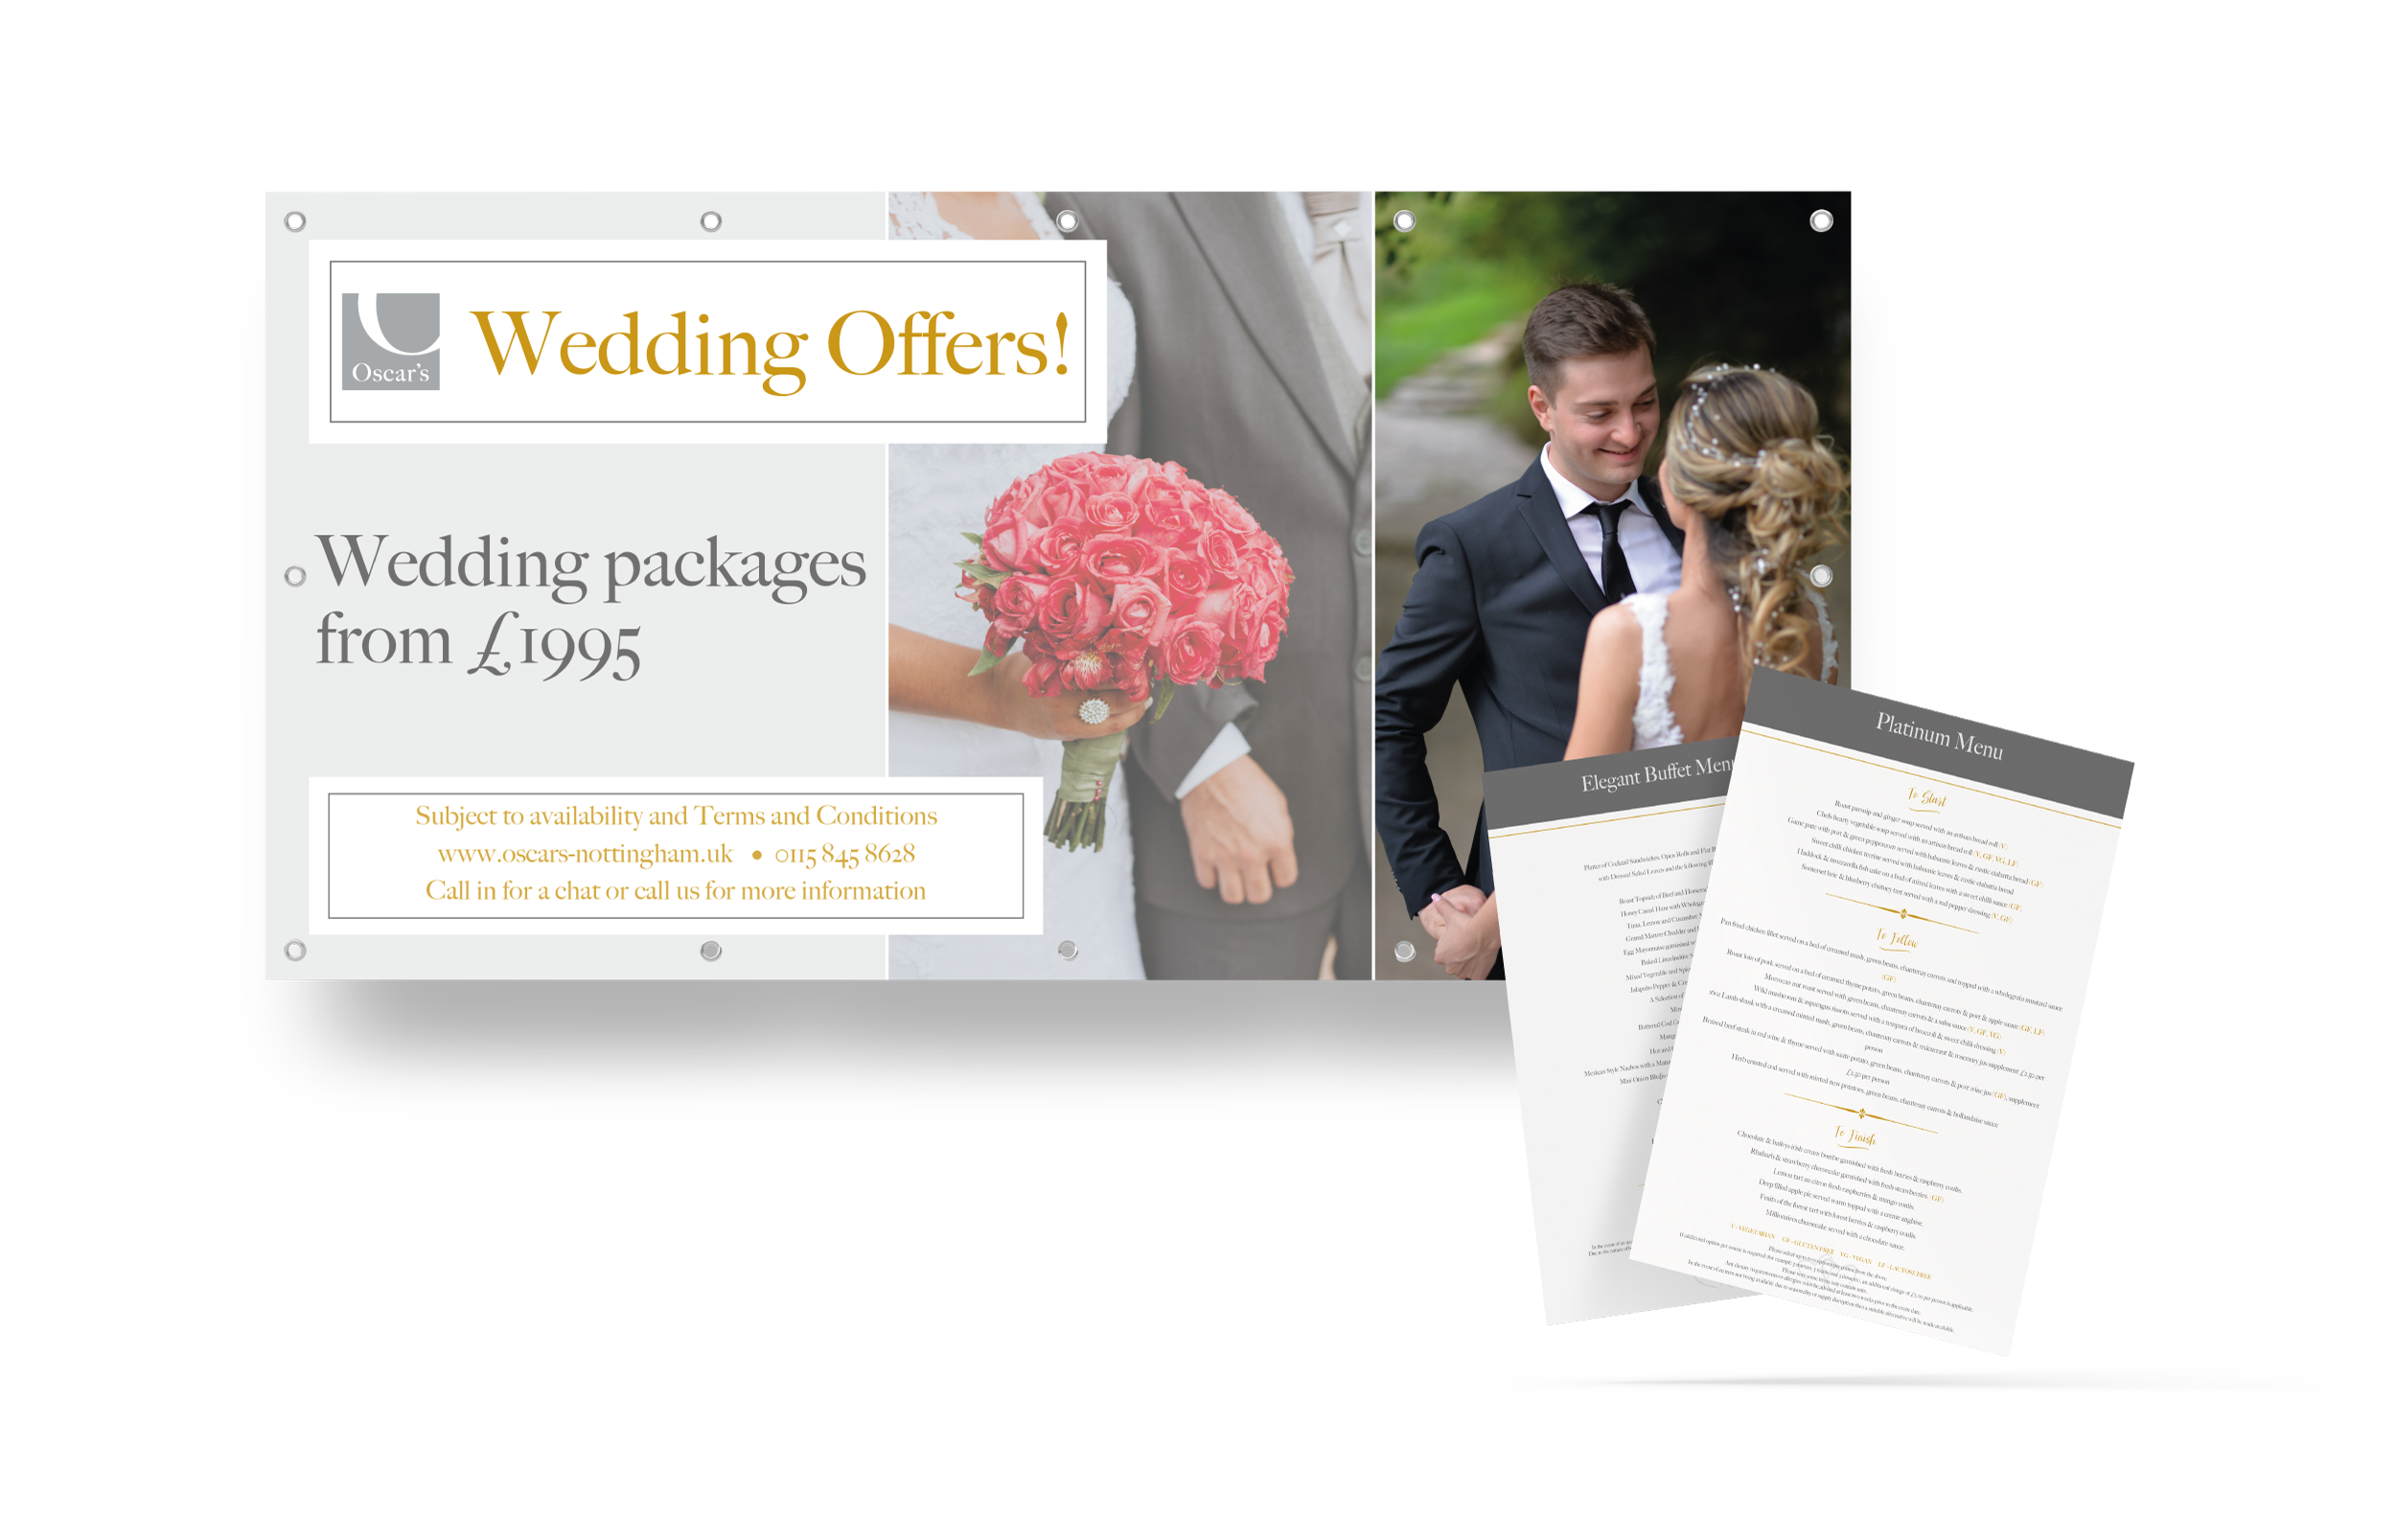 Wedding Package PVC Banner and Handout Design and Print for Oscars Nottingham